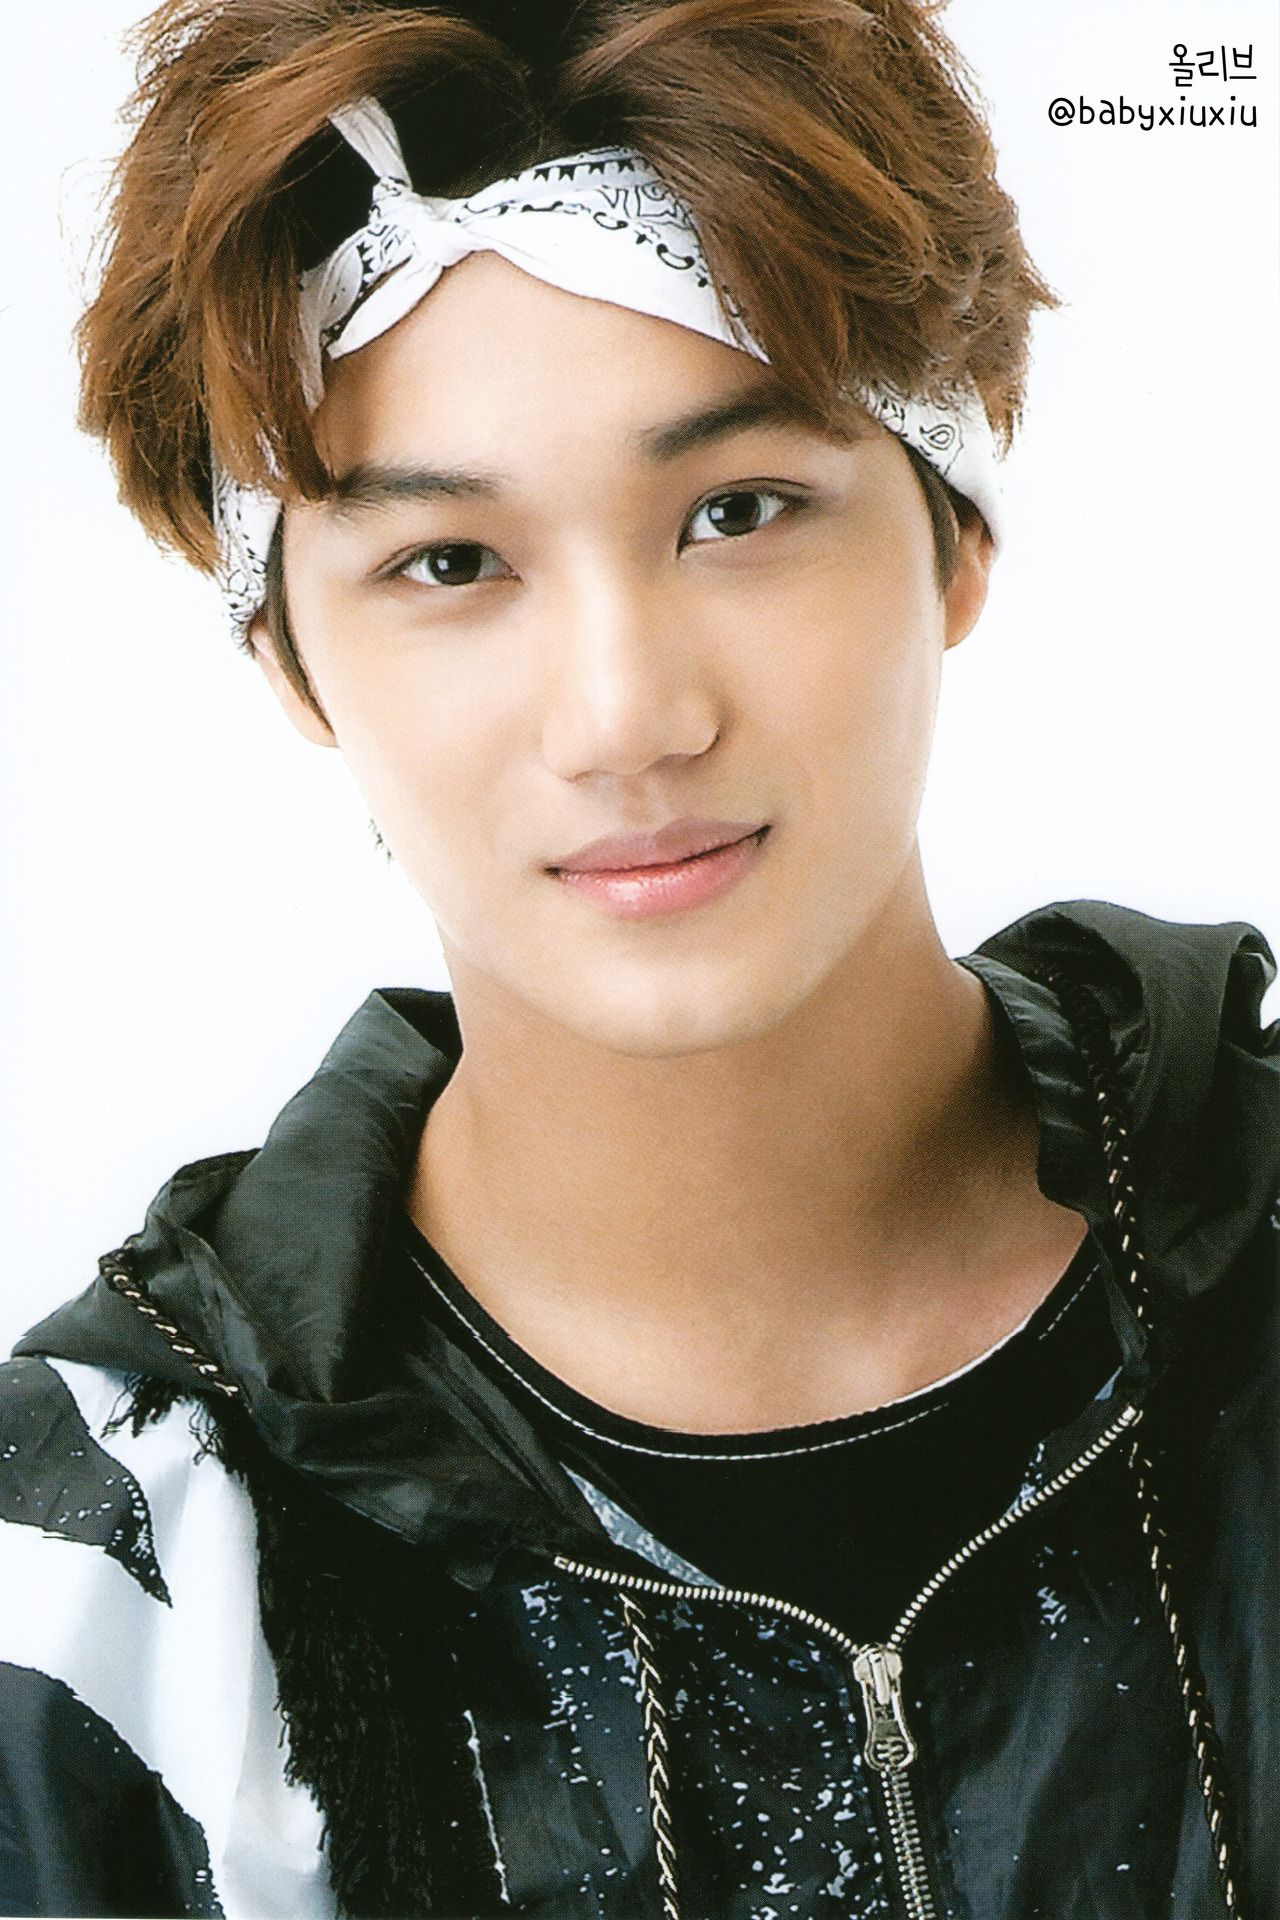 Kai Of Exo Looking Very At Ease And Handsome Here